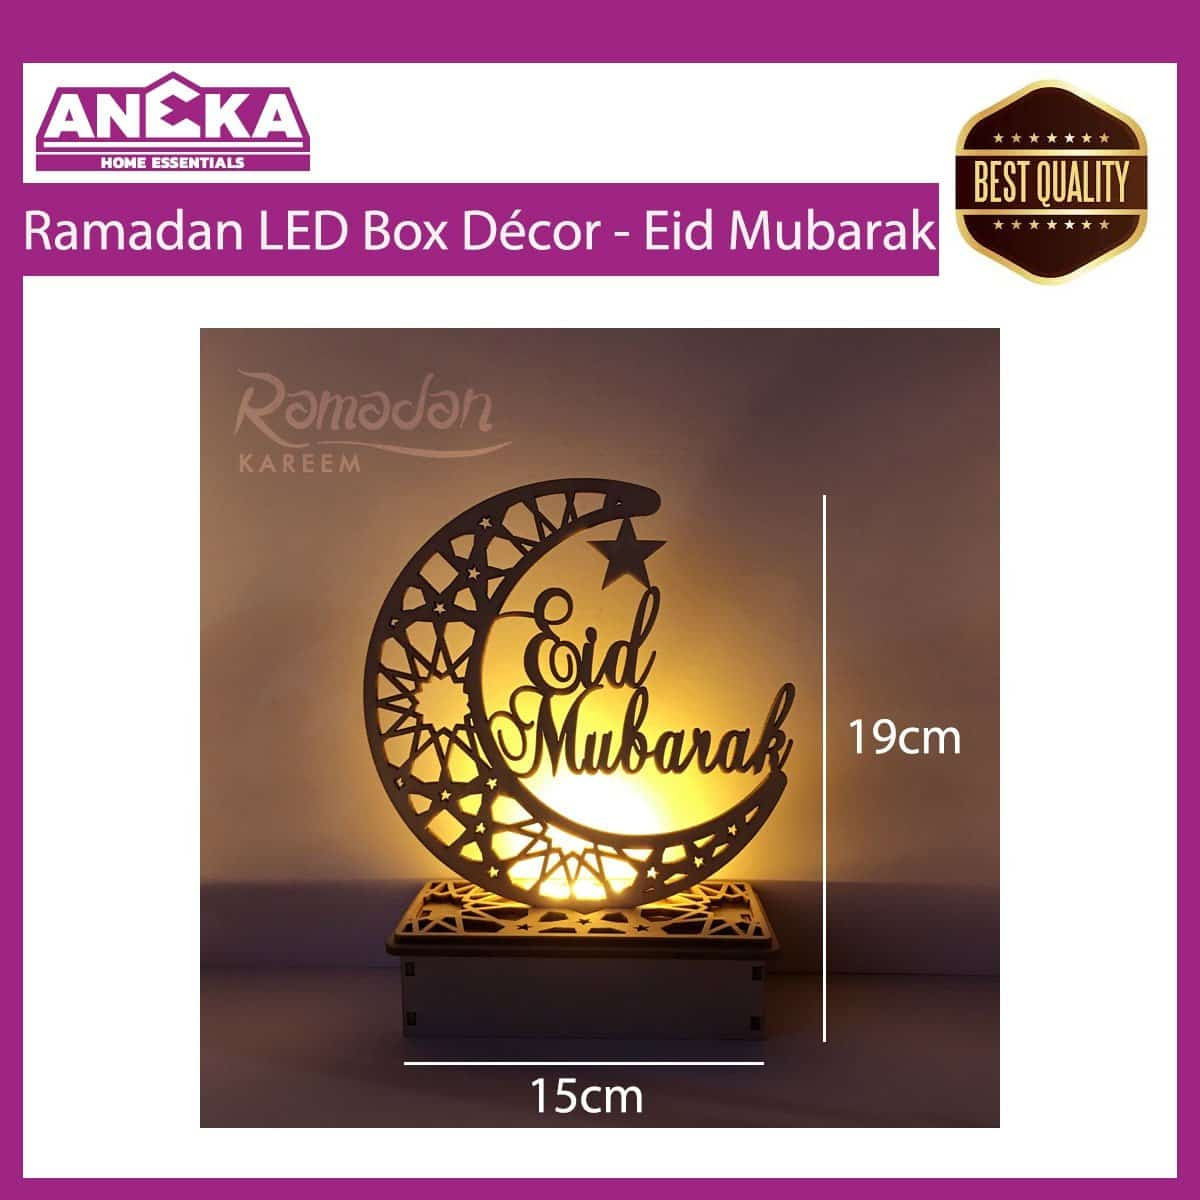 Ramadan LED Box Décor - Eid Mubarak